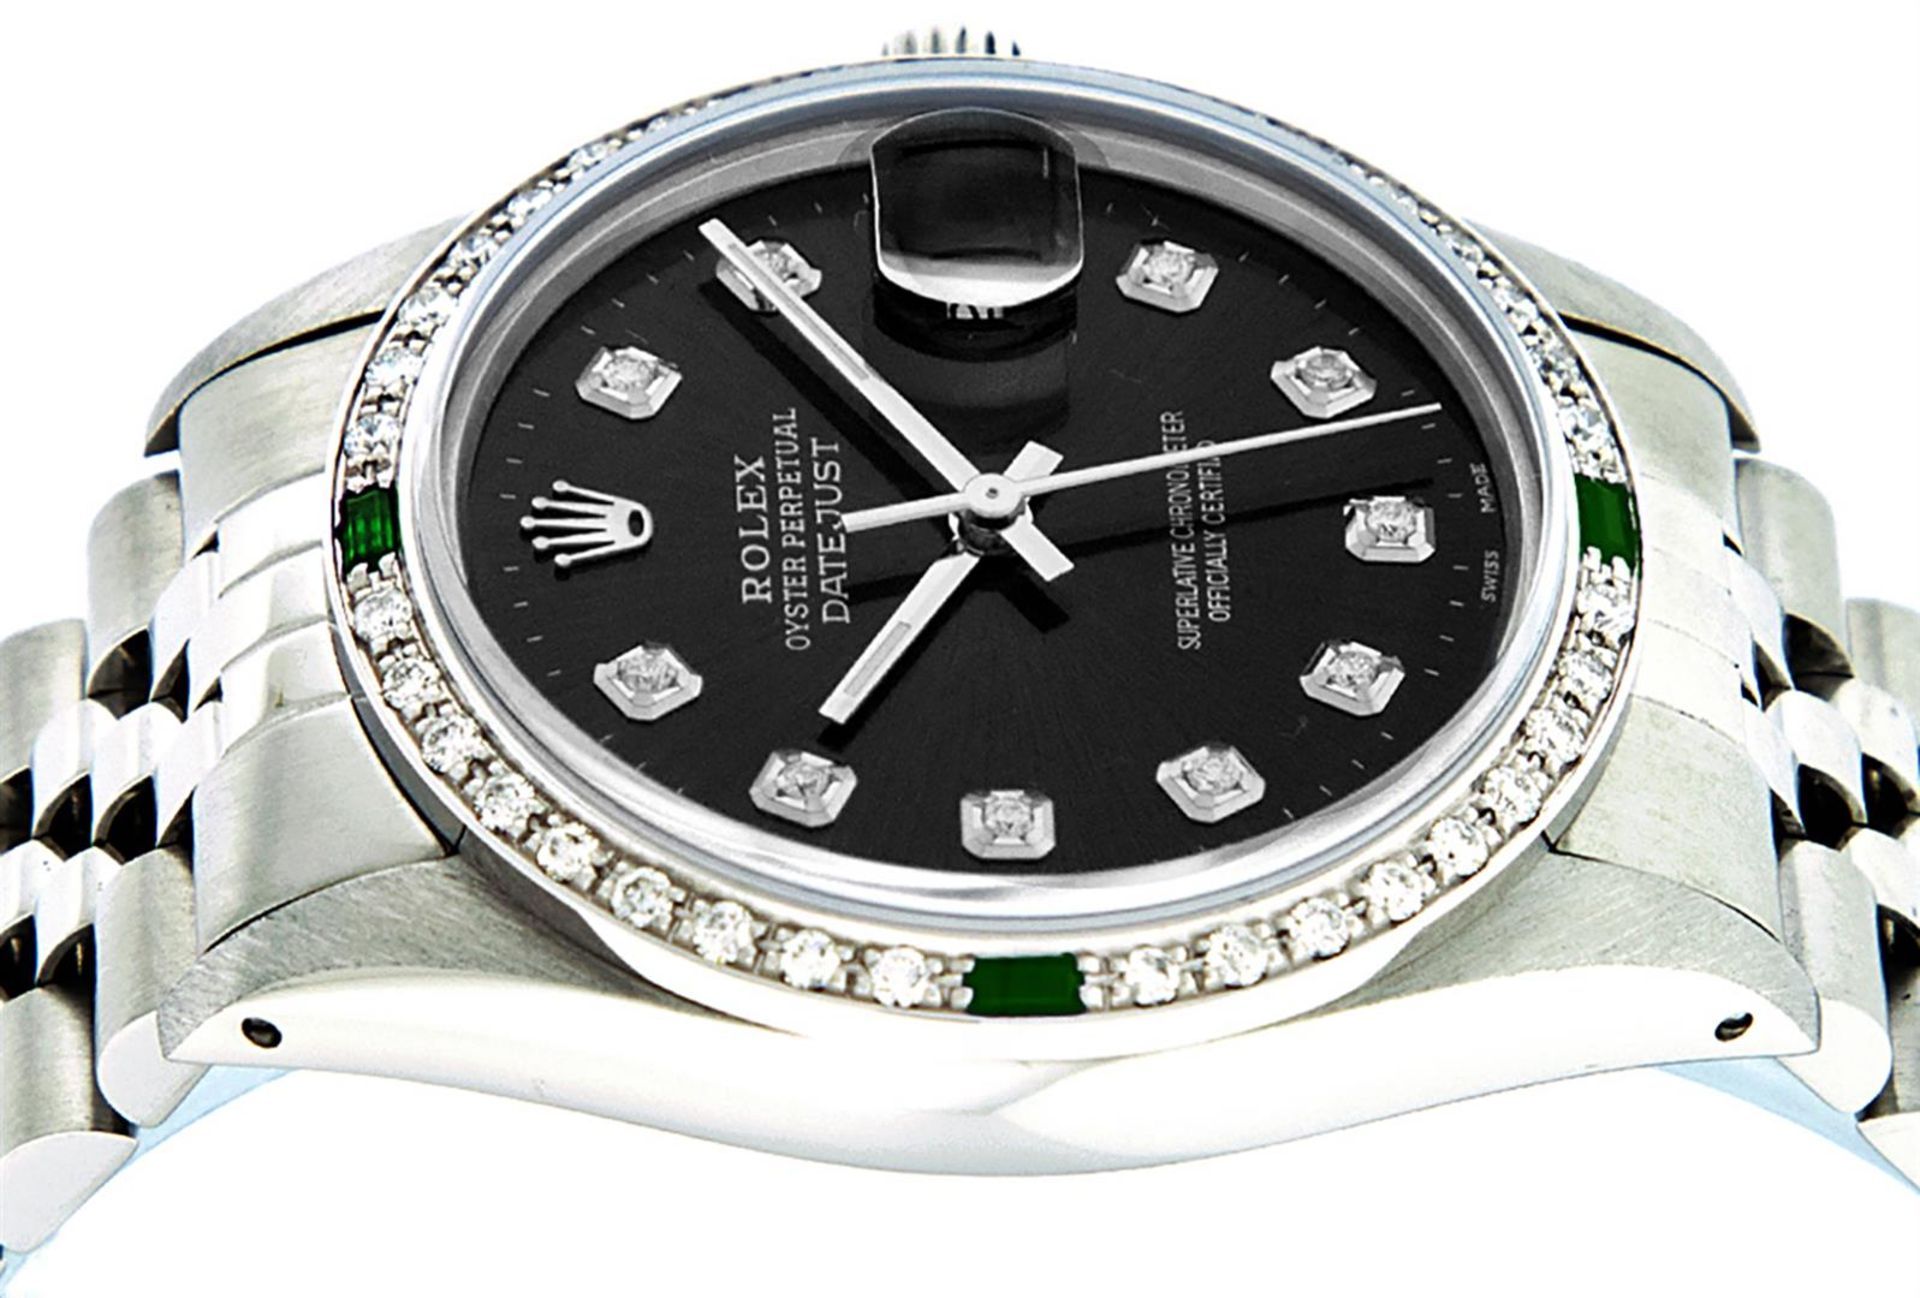 Rolex Mens Stainless Steel Black Diamond & Emerald Oyster Perpetual Datejust Wri - Image 3 of 9